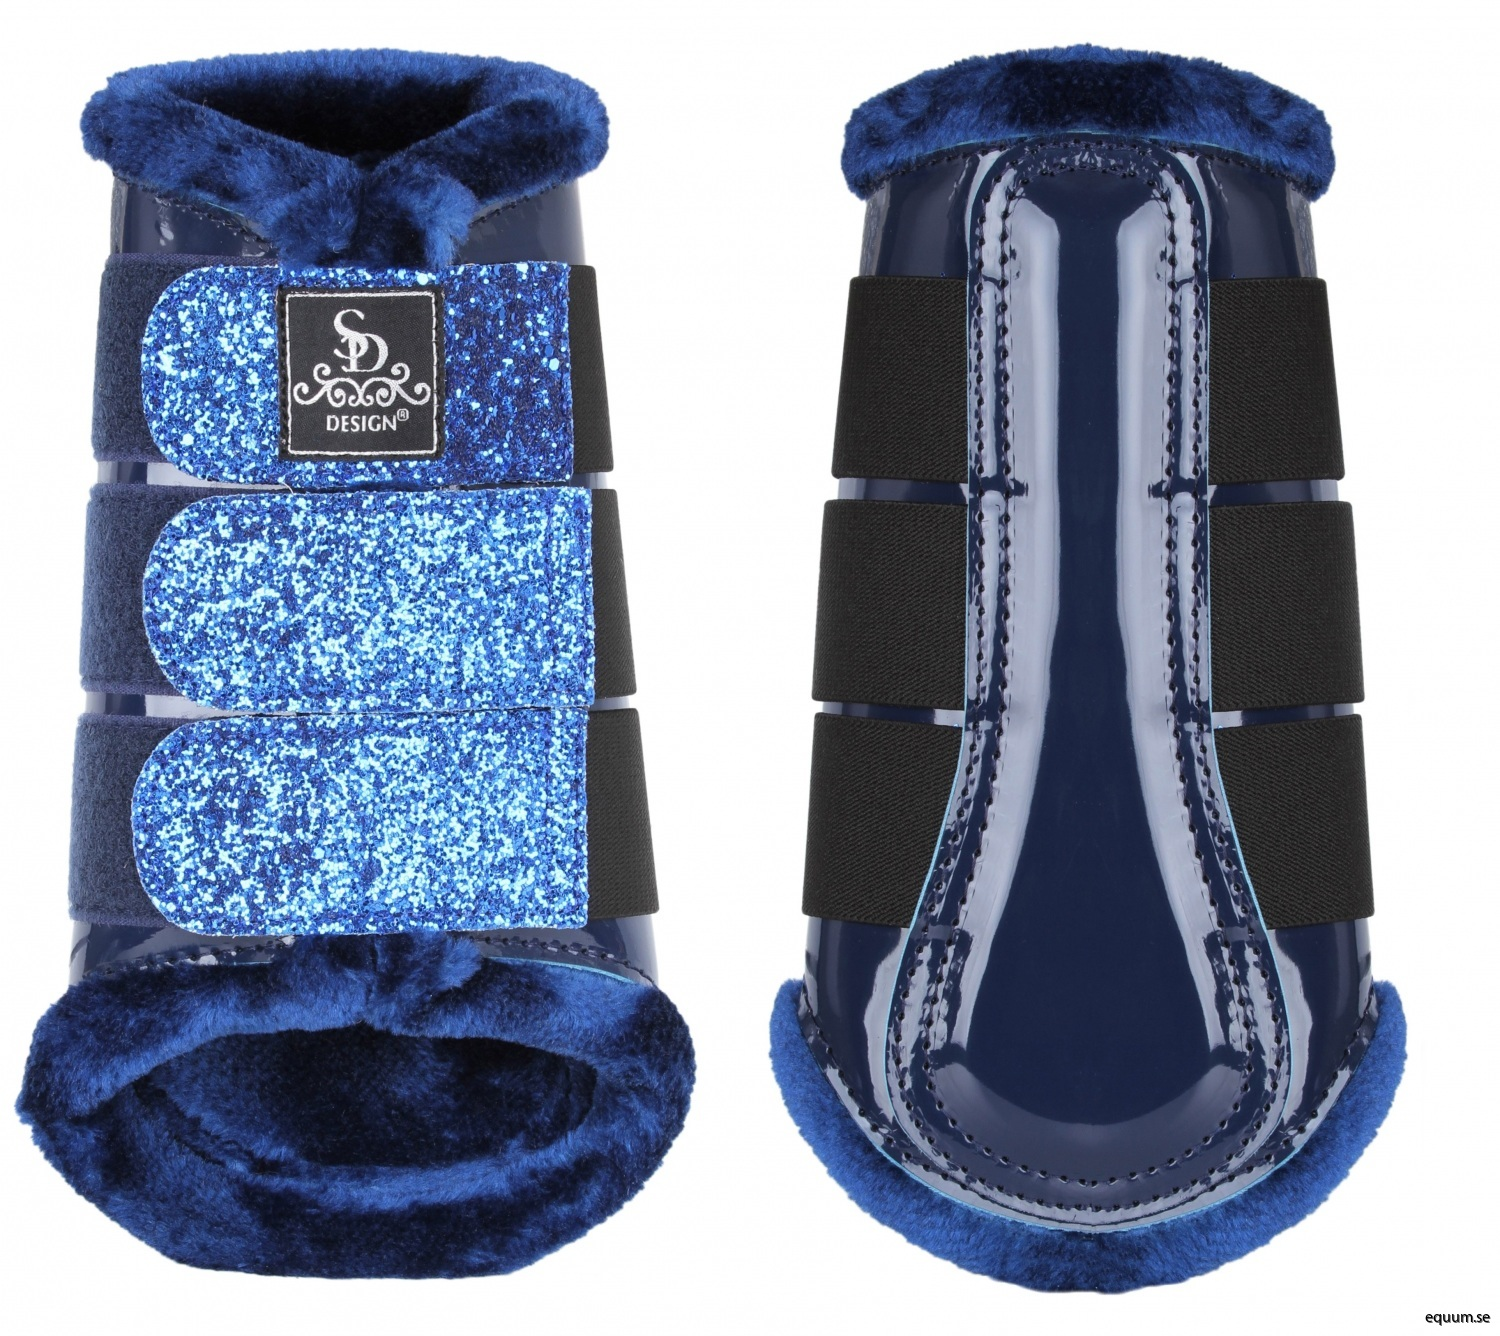 O-219-SD-Glitter-tendon-boots-navy